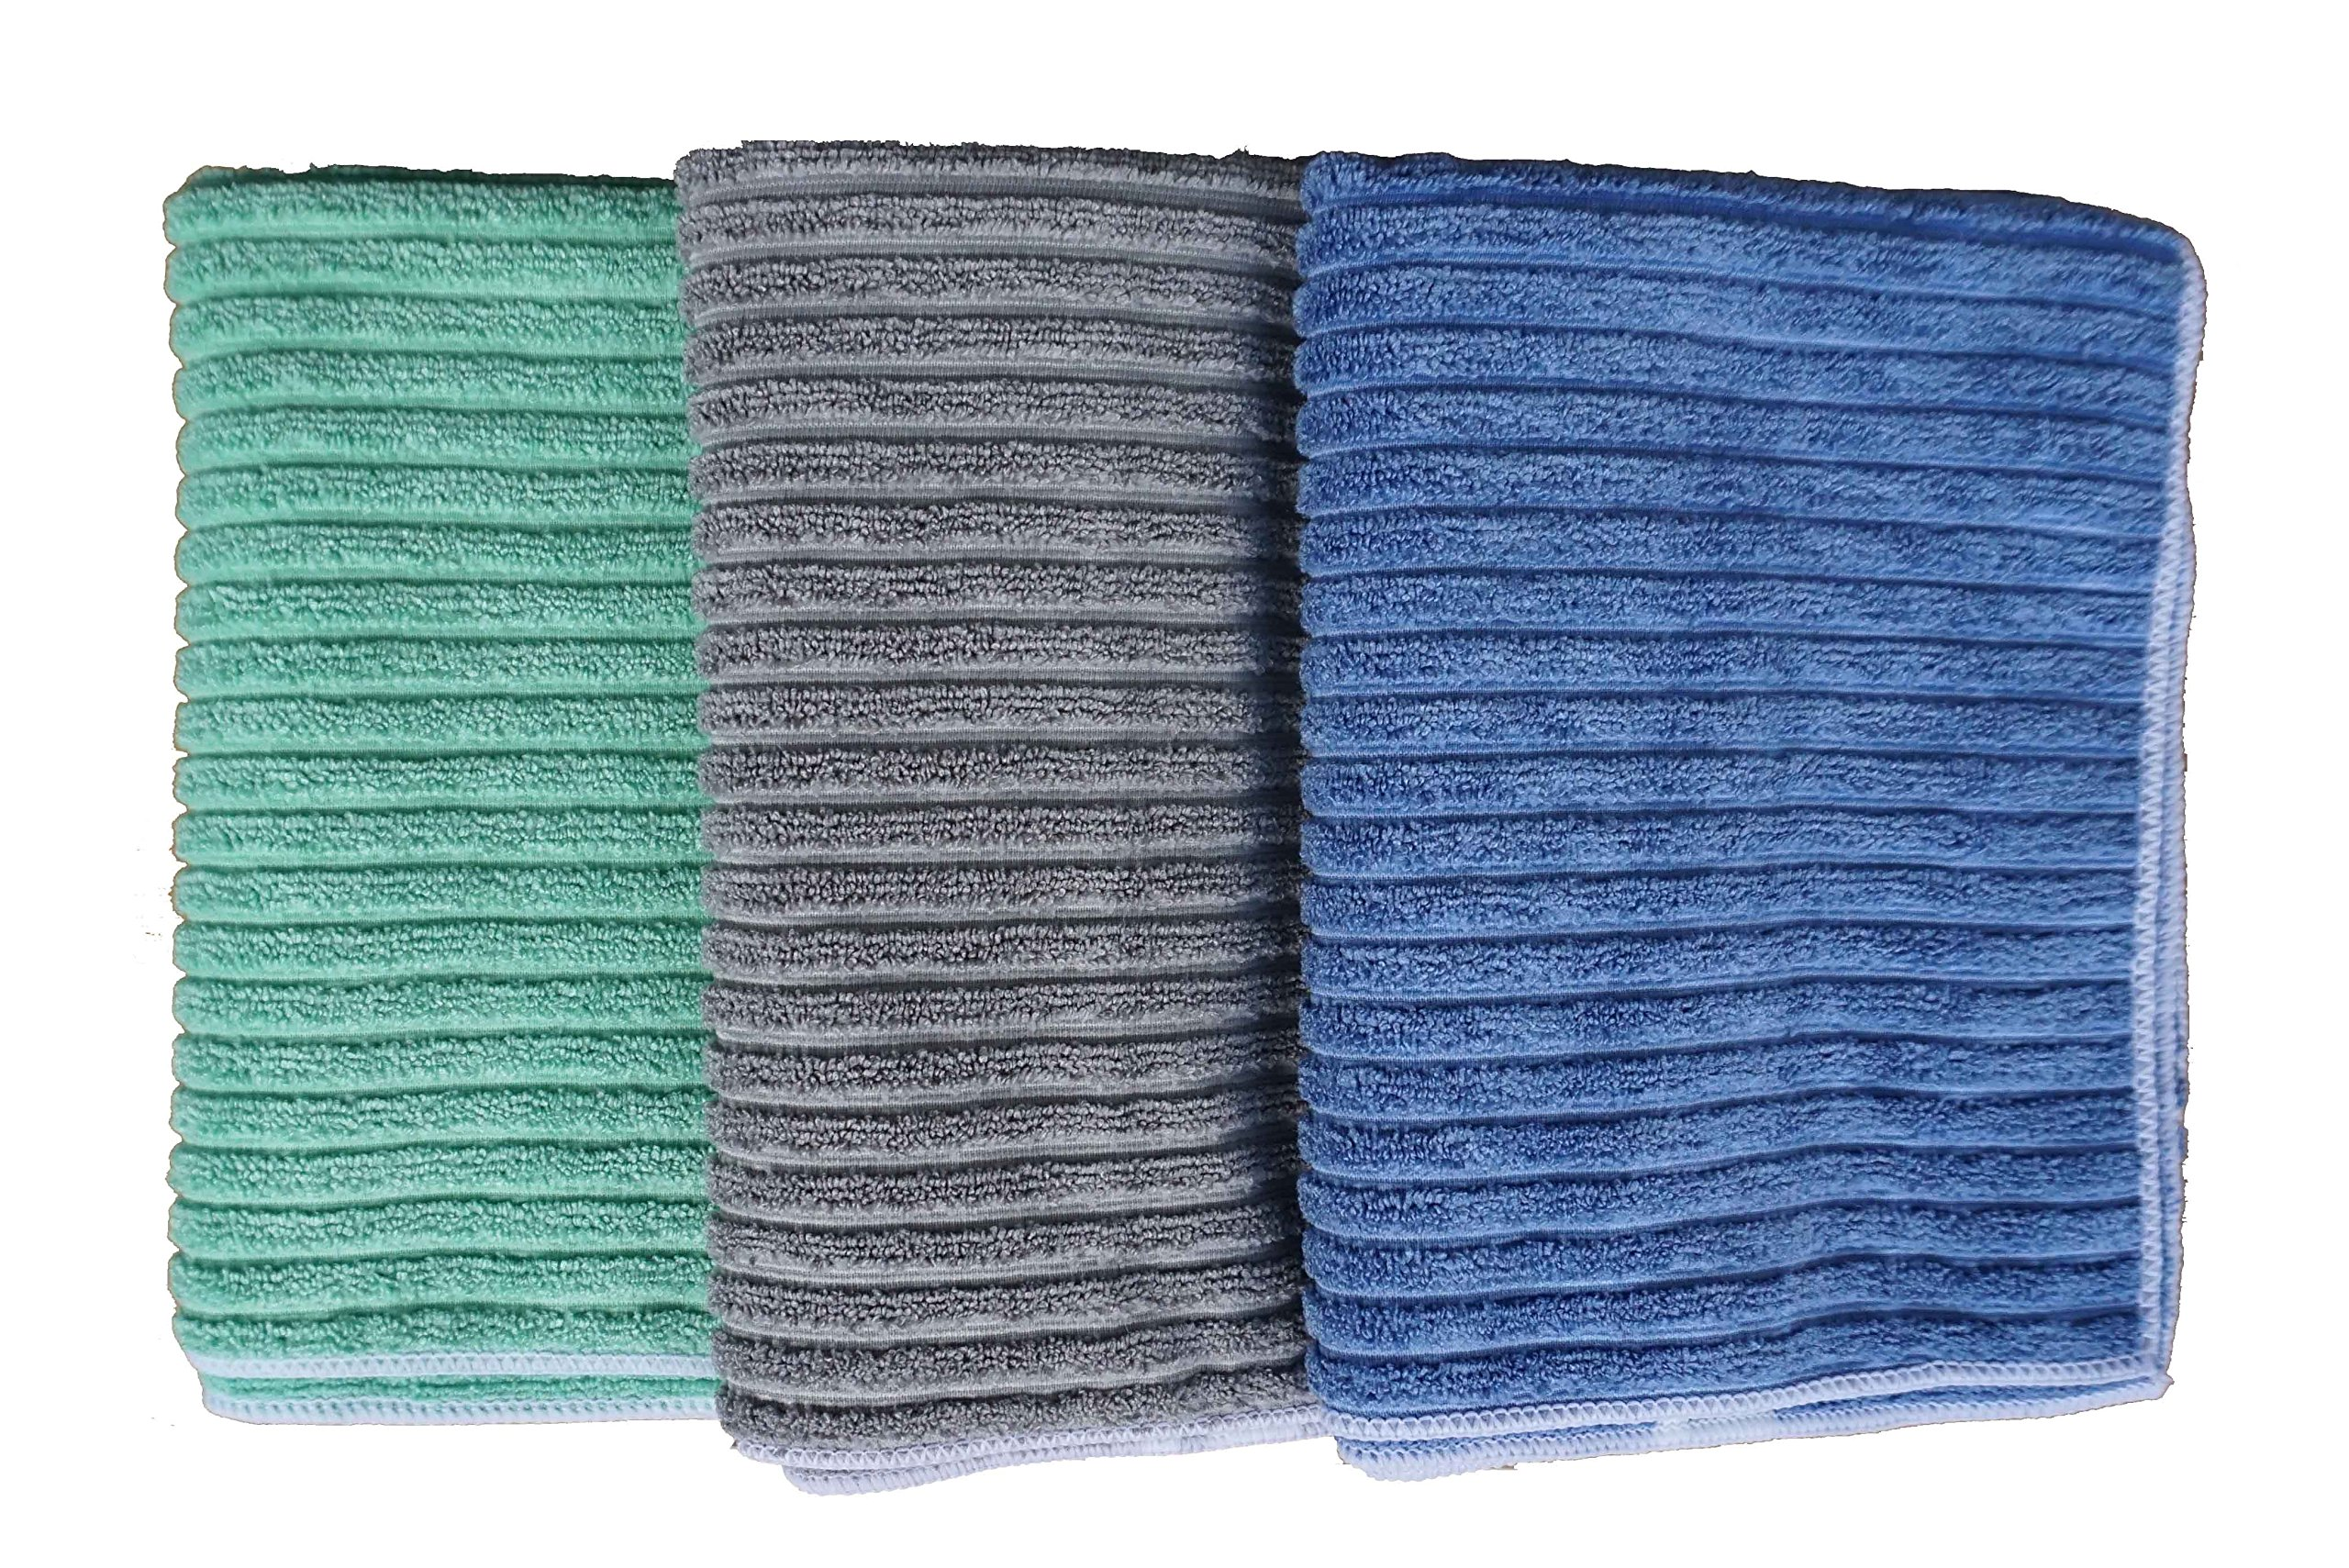 Gryeer Bamboo Microfiber Kitchen Towels - colors